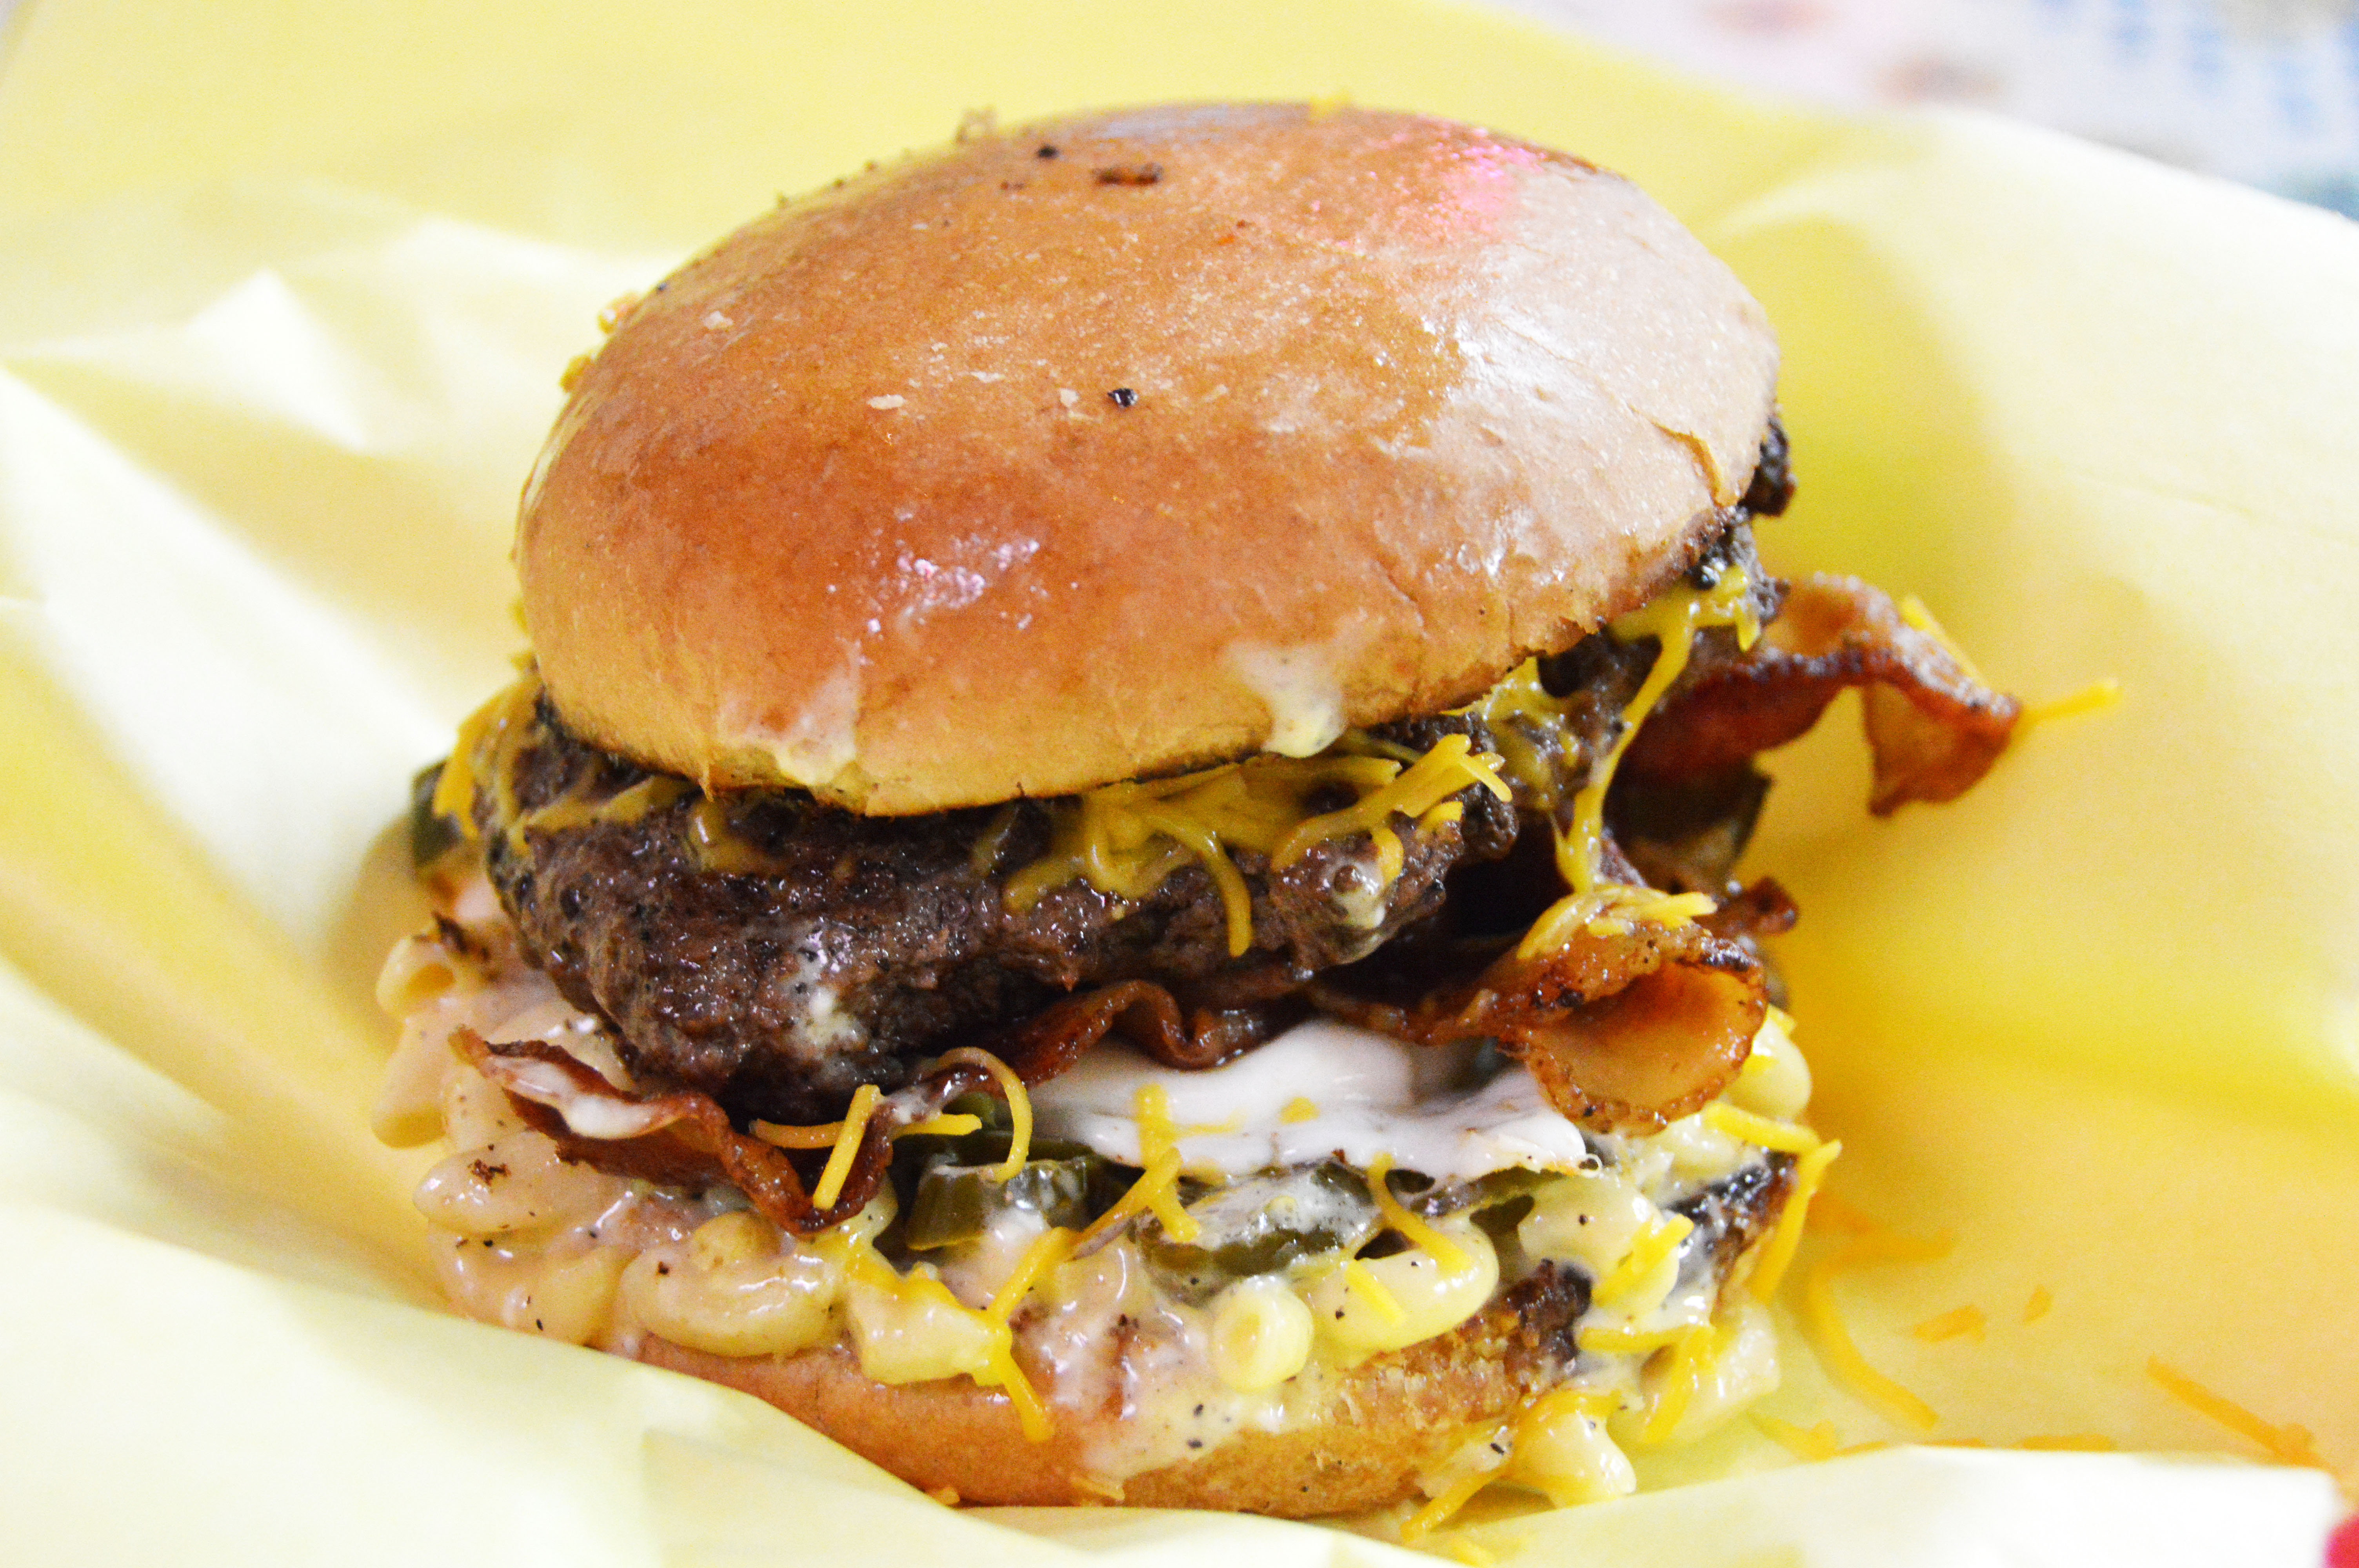 The Grim Burger from Lankford Grocery & Market